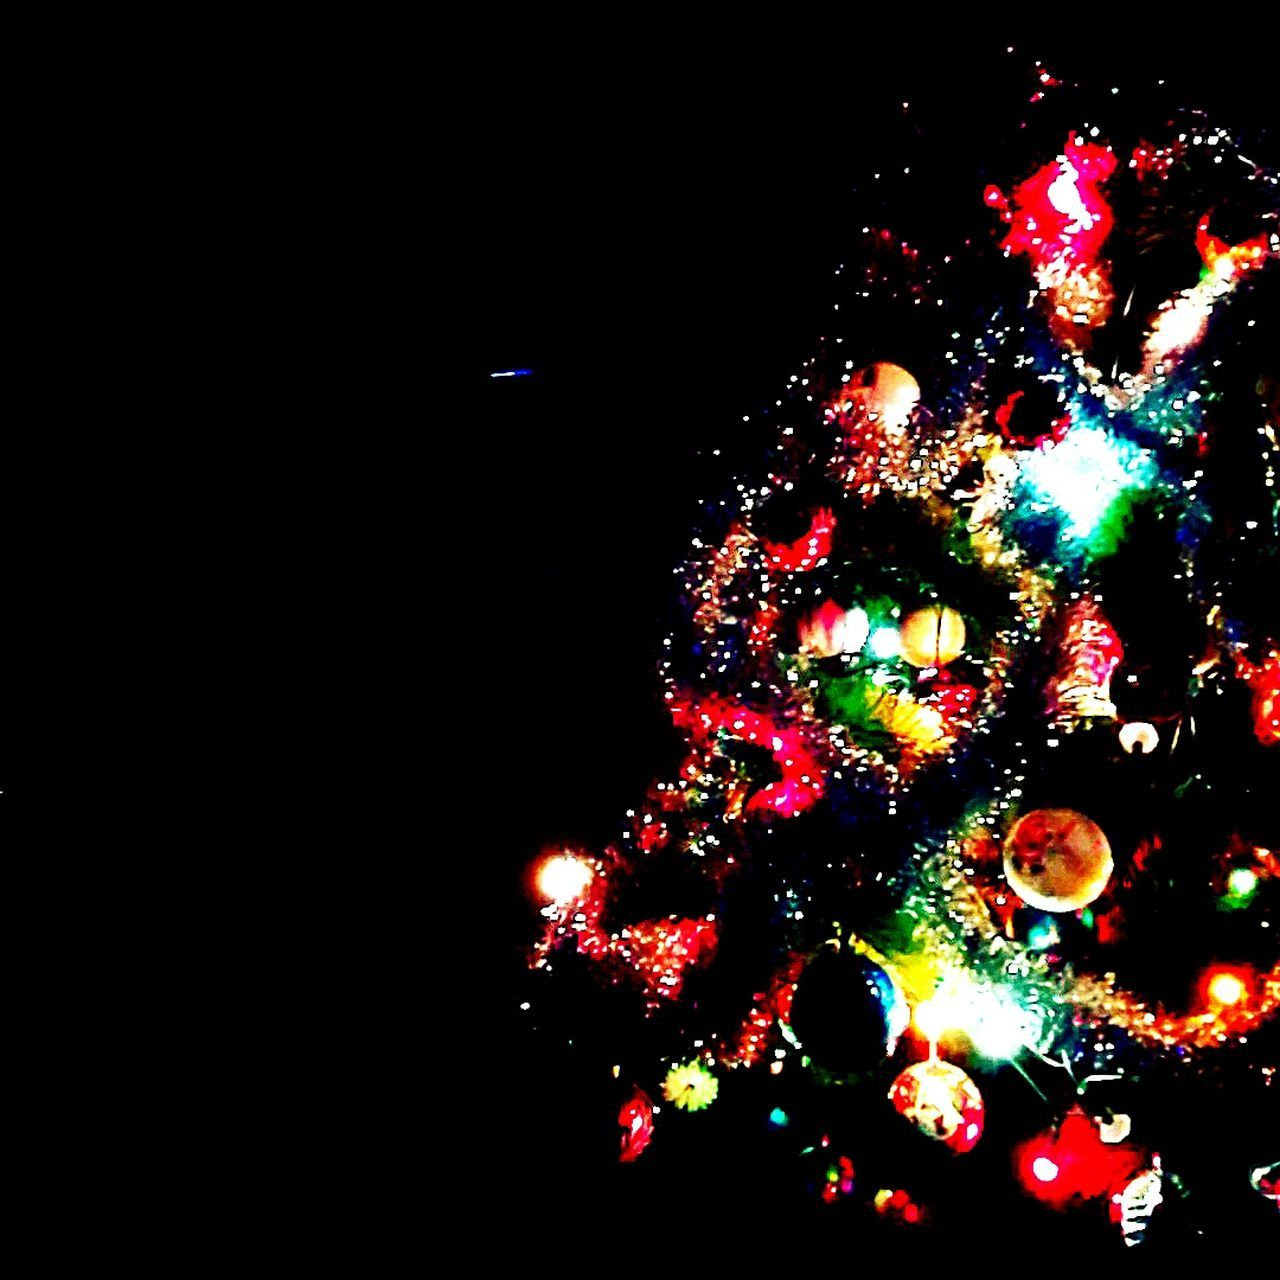 Last nights by the Christmas tree... Christmas Christmas Tree Celebration Illuminated Christmas Lights Tree Christmas Decoration Tradition Holiday - Event Christmas Ornament Celebration Event Cultures Night Indoors  Christmas Bauble Flower Songwriter Songwriting Canto Songs Fragility Italy🇮🇹 Red Festival Song